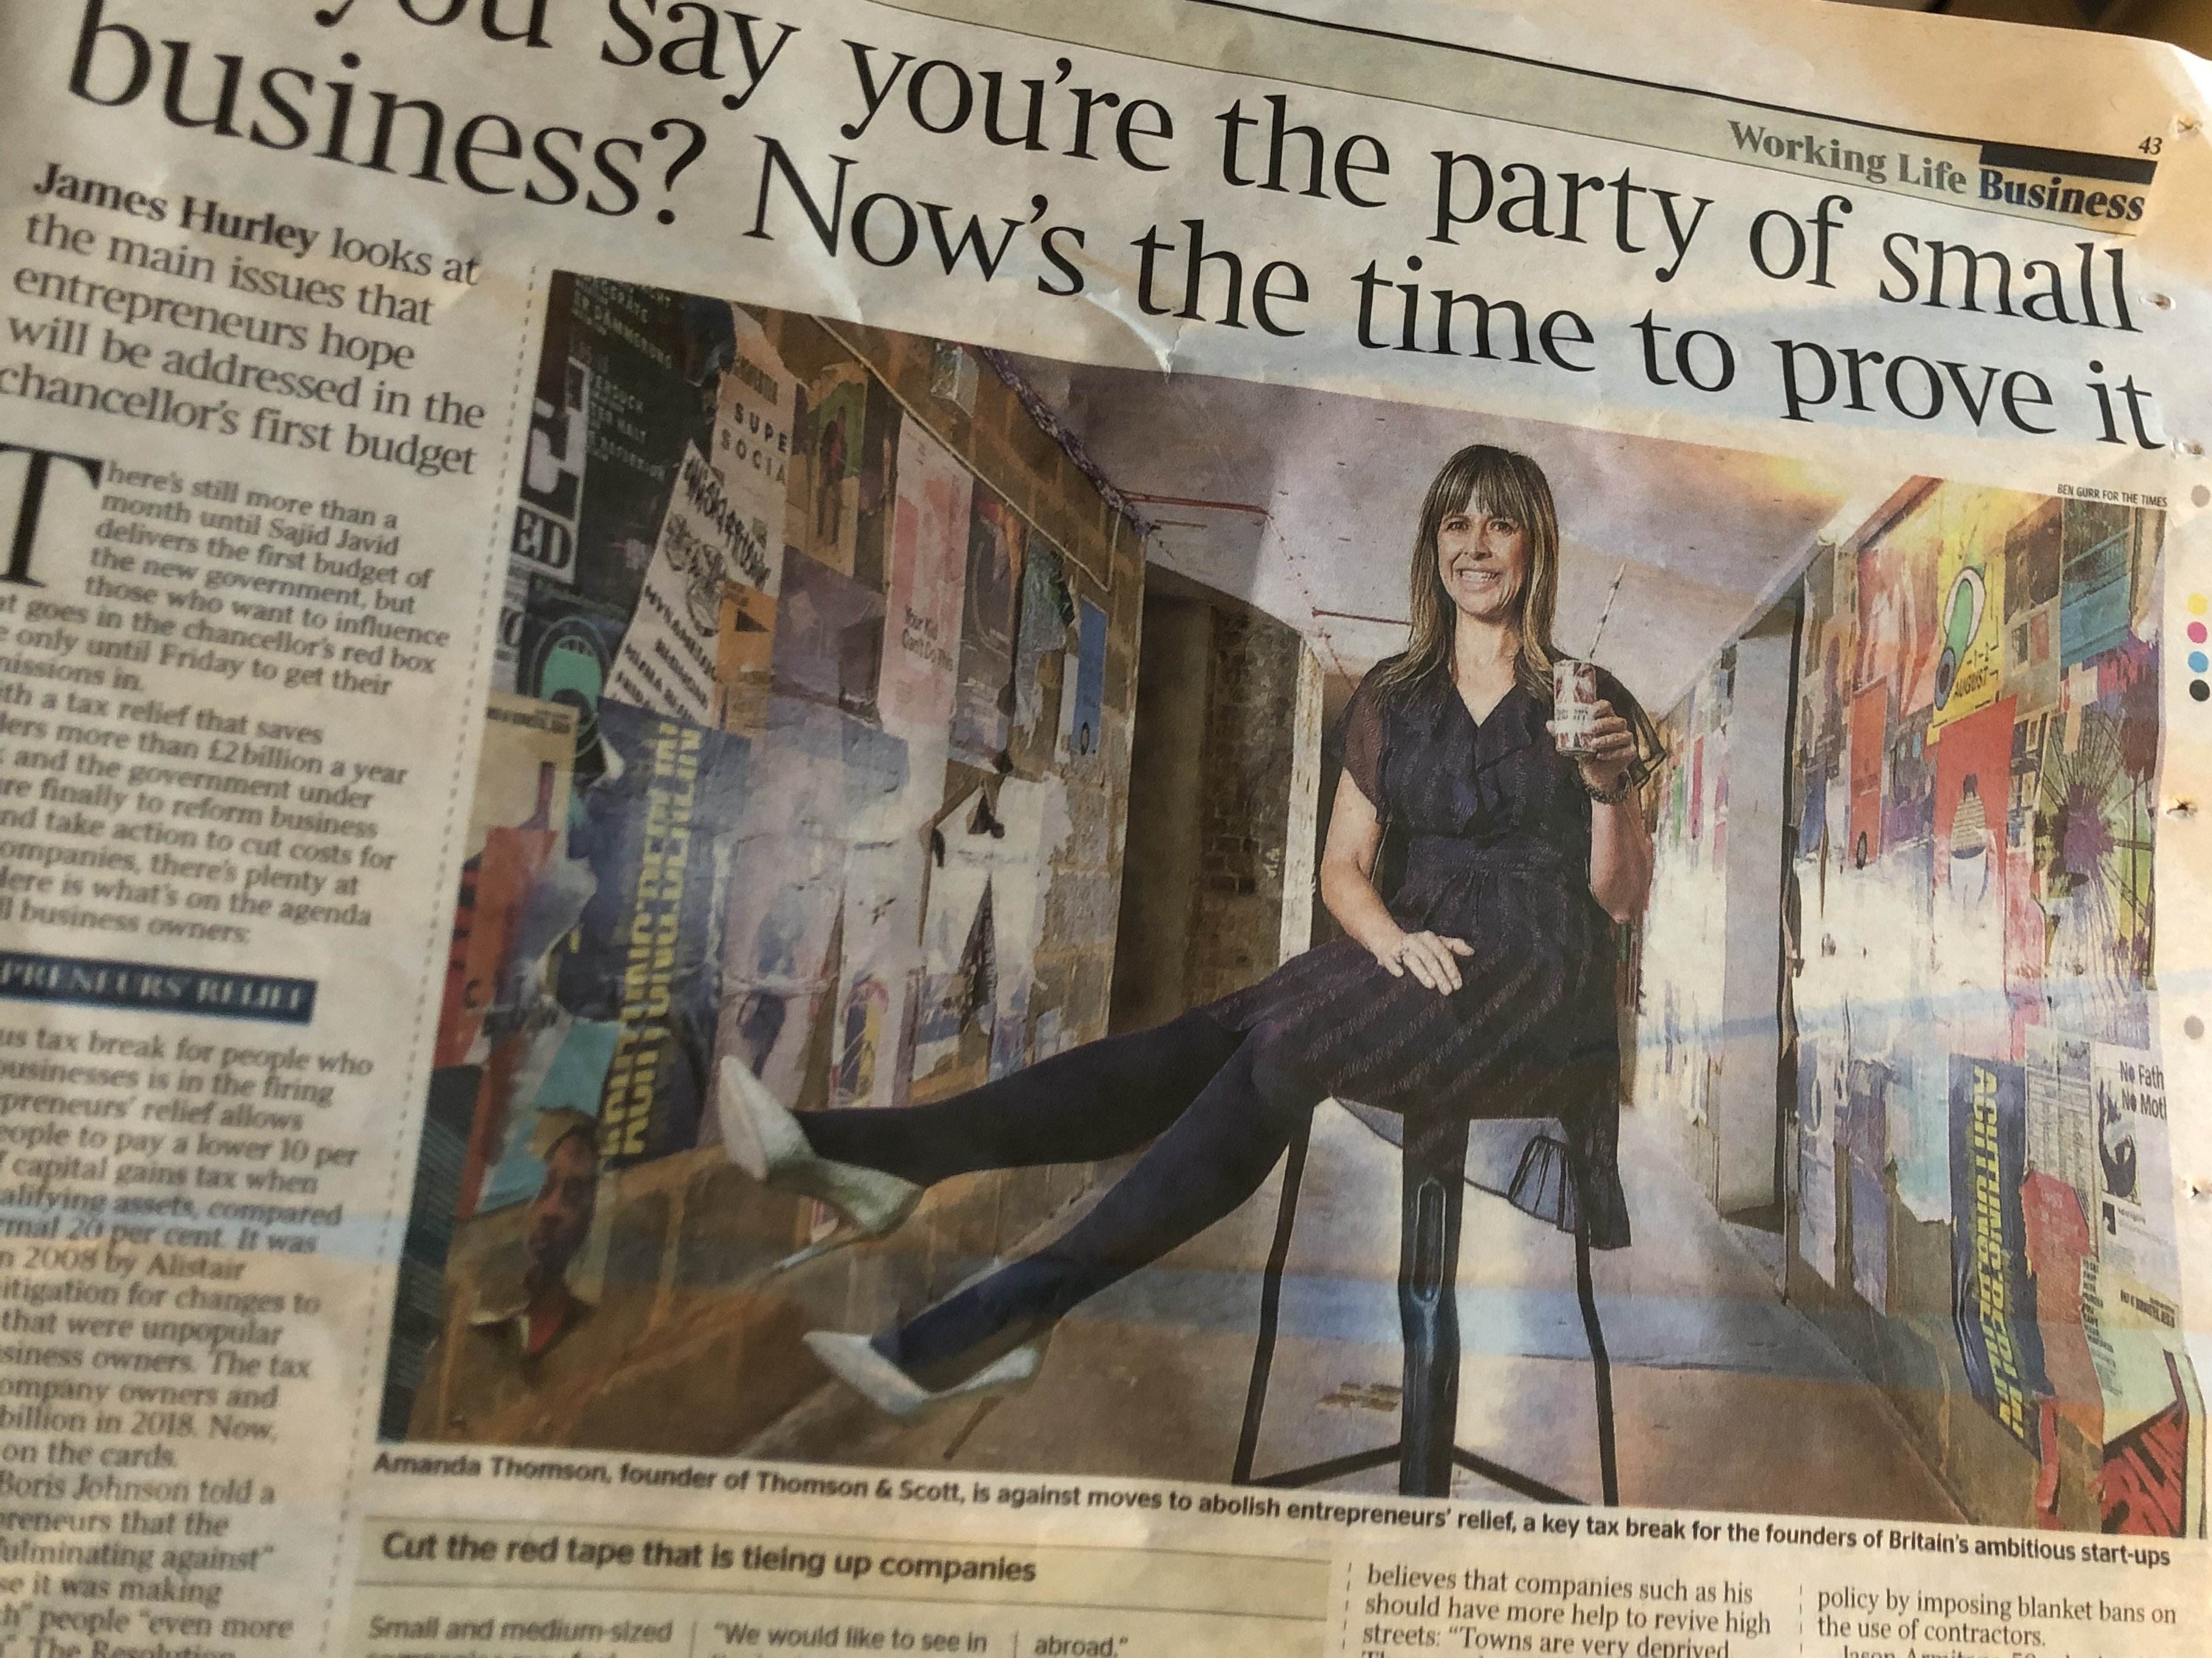 As an entrepreneur working to build an international brand, I was horrified to hear that the UK government was considering shutting down the Entrepreneurs' Relief in the next budget. So, with a petition to government and whopping news feature in today's Times, we're hoping to have our voice heard in Parliament.